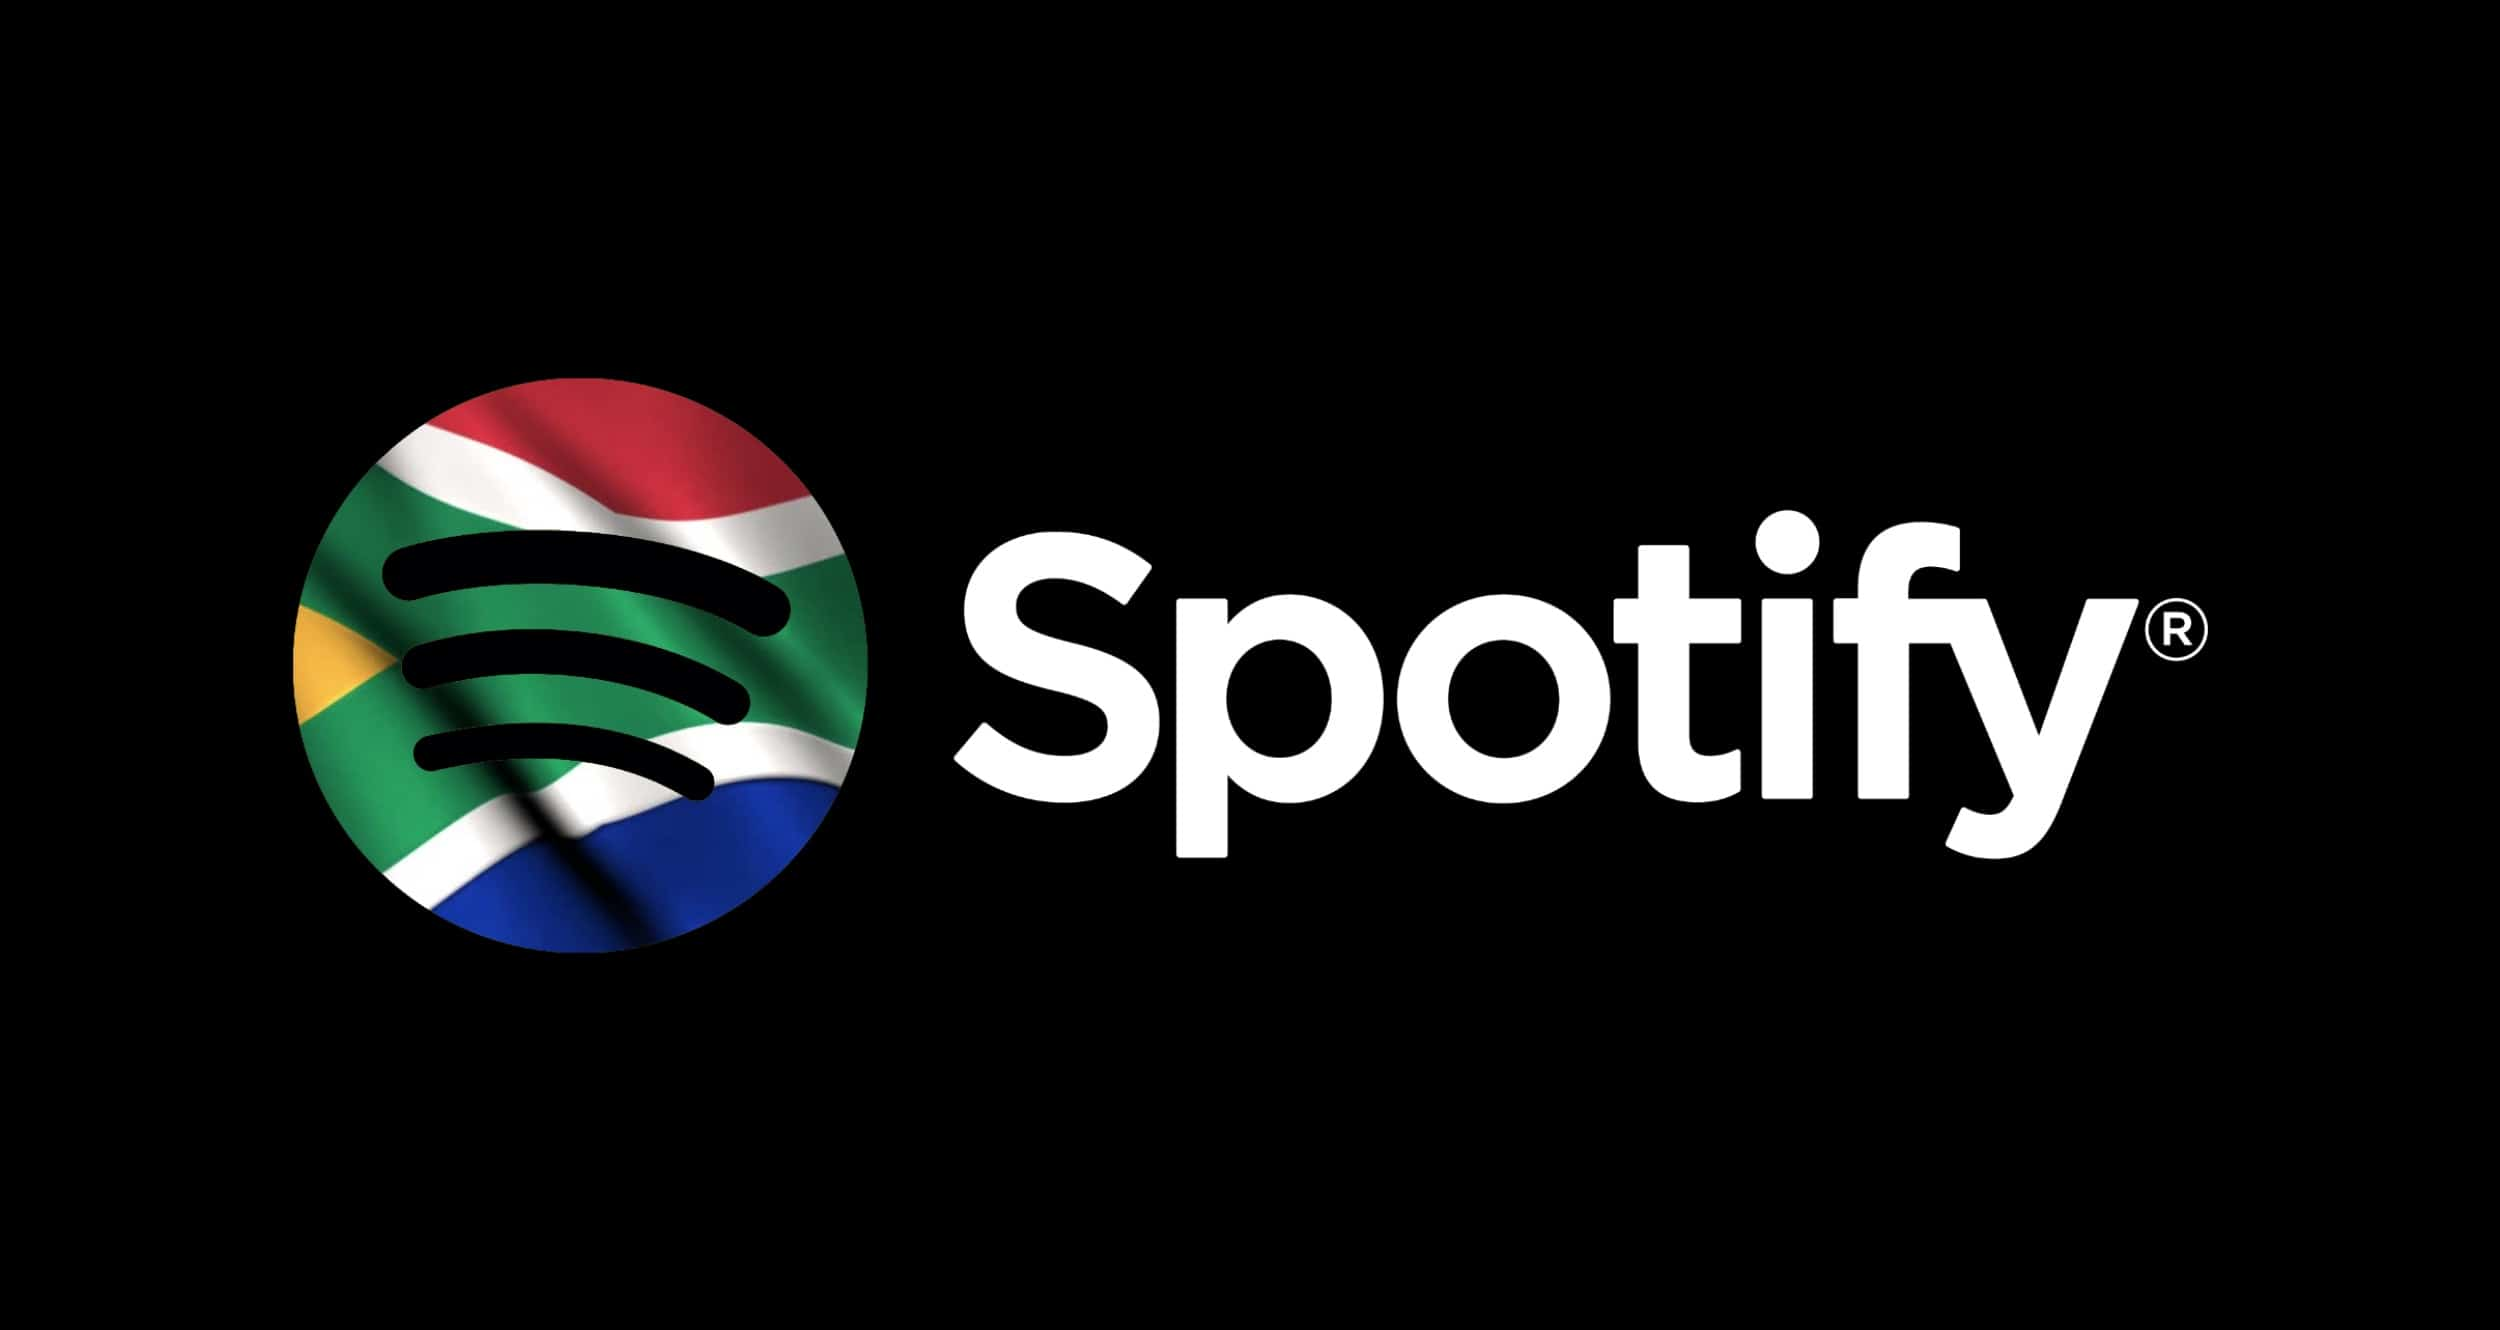 Spotify launches music streaming service in Israel